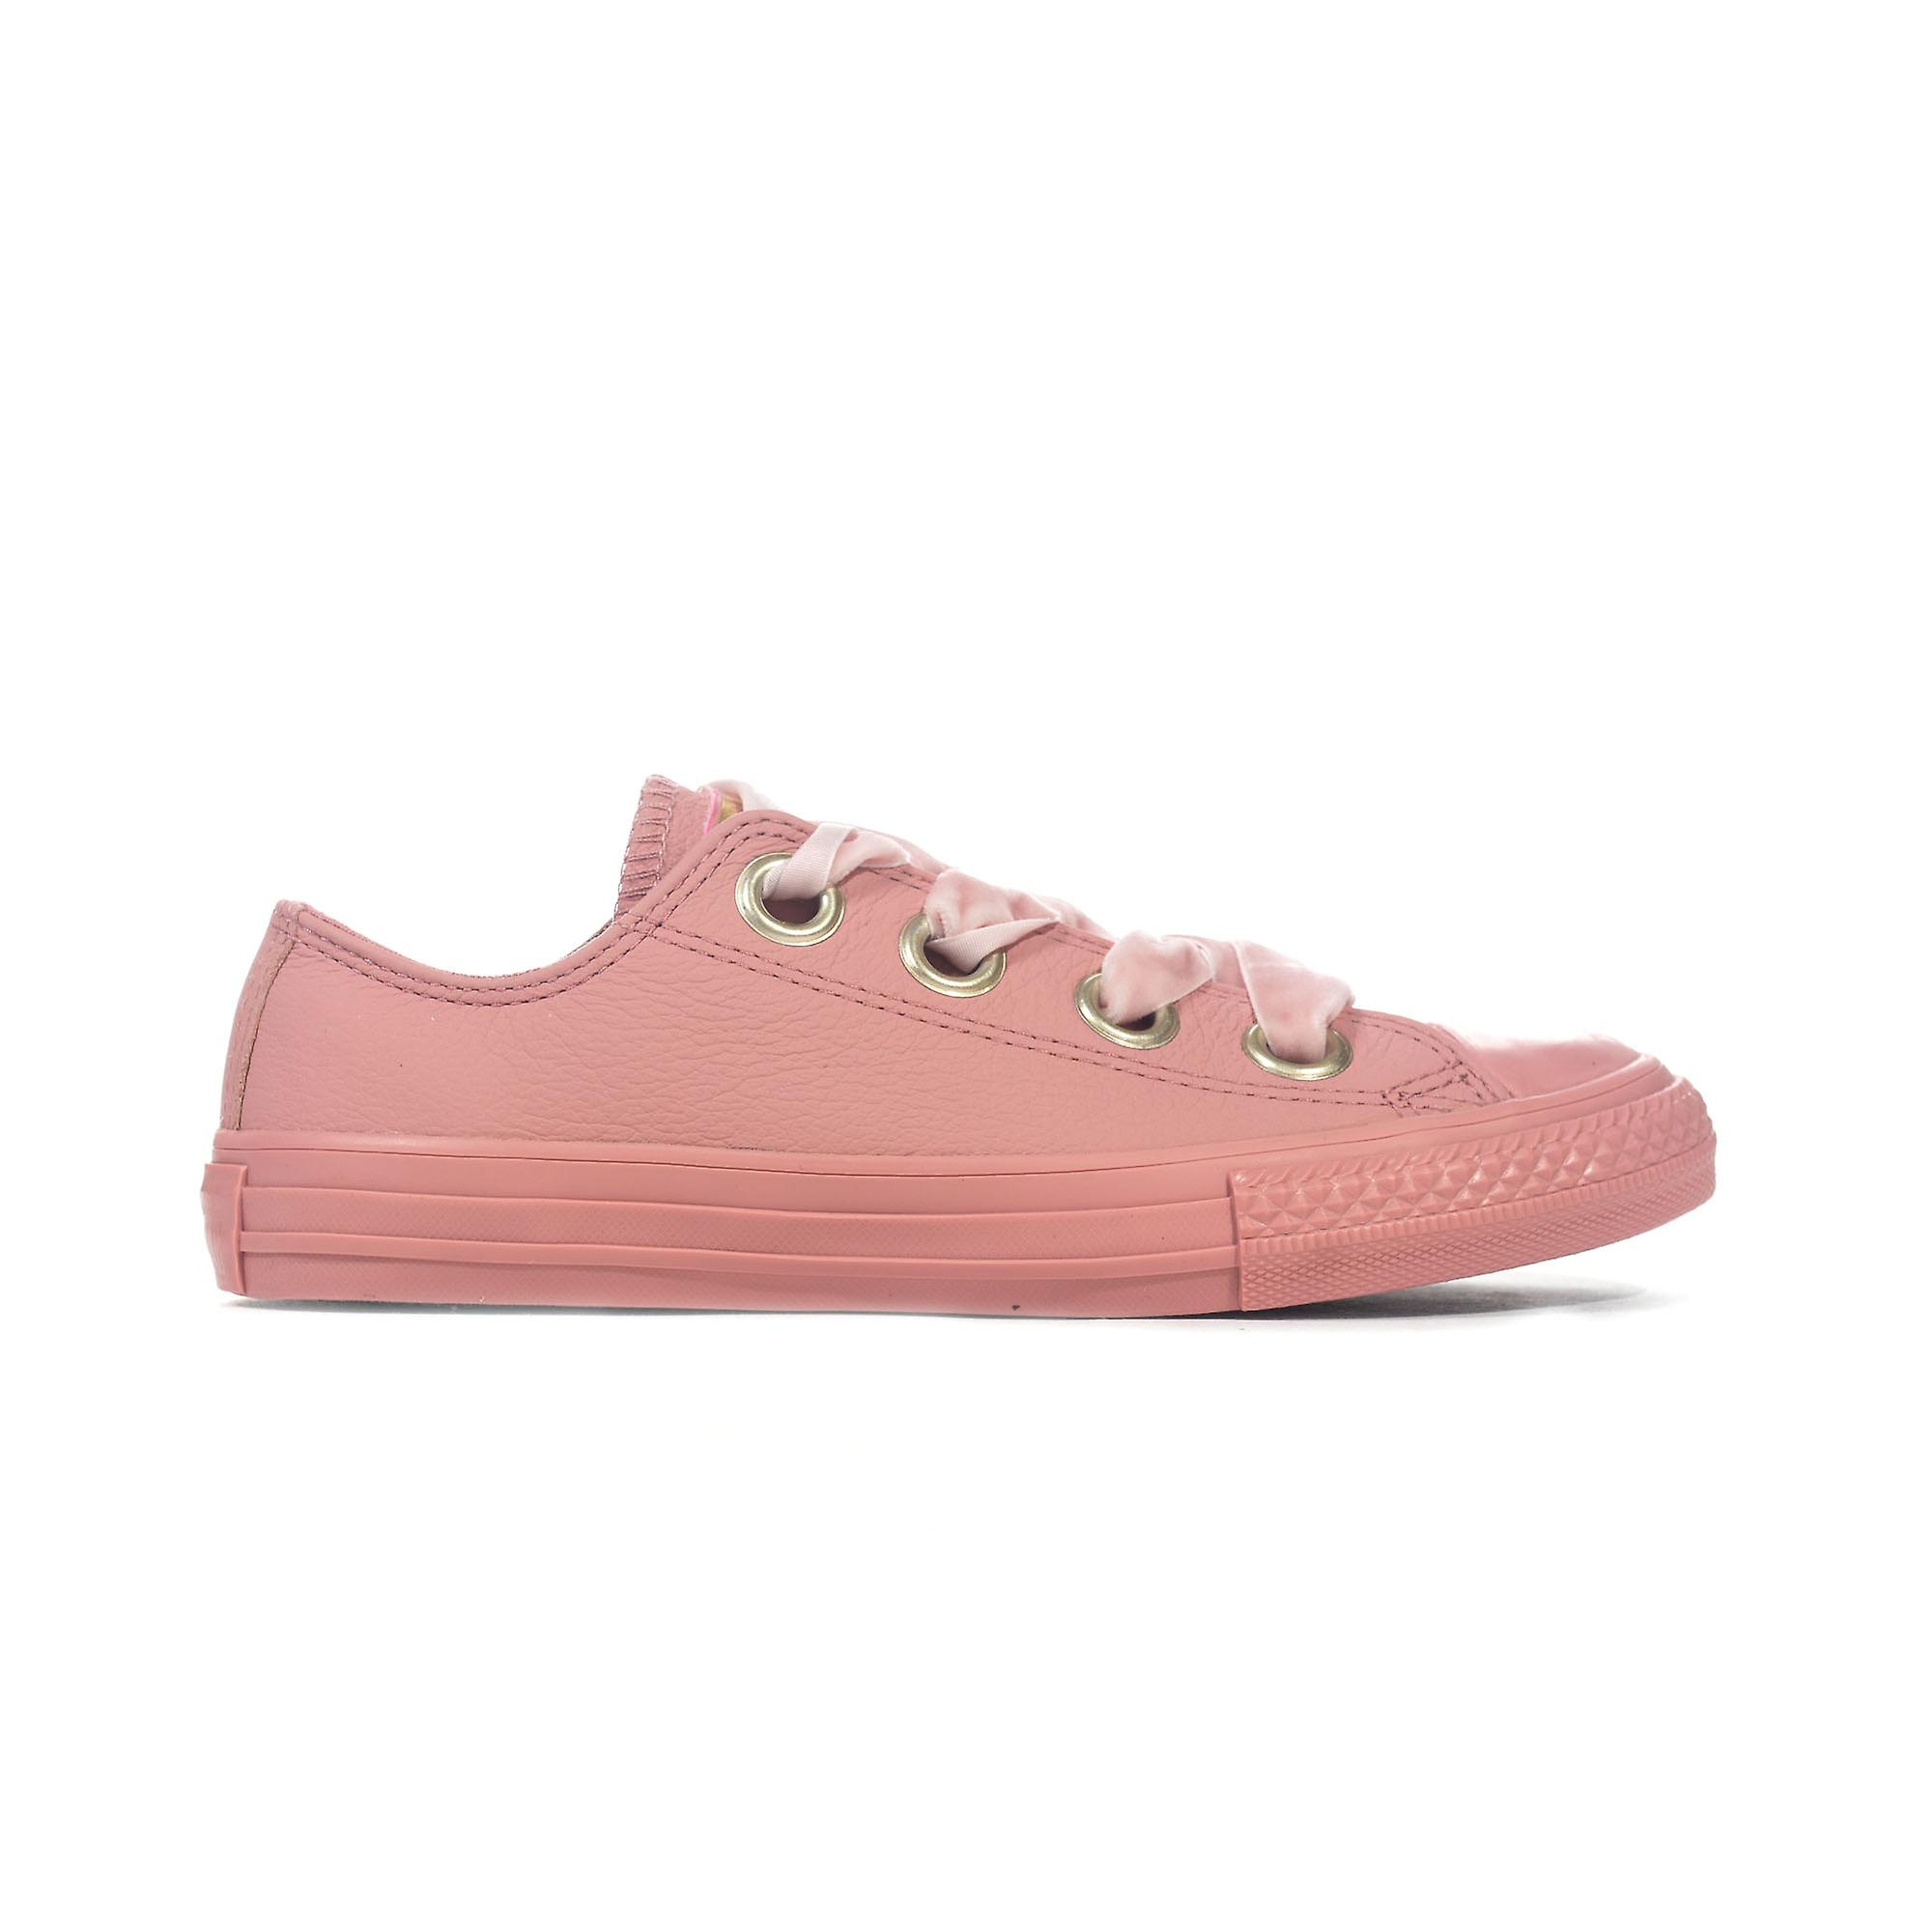 3bb643e77f2101 Converse Chuck Taylor All Star Big Eyelets Leather Ox Girls Trainer Rust  Pink